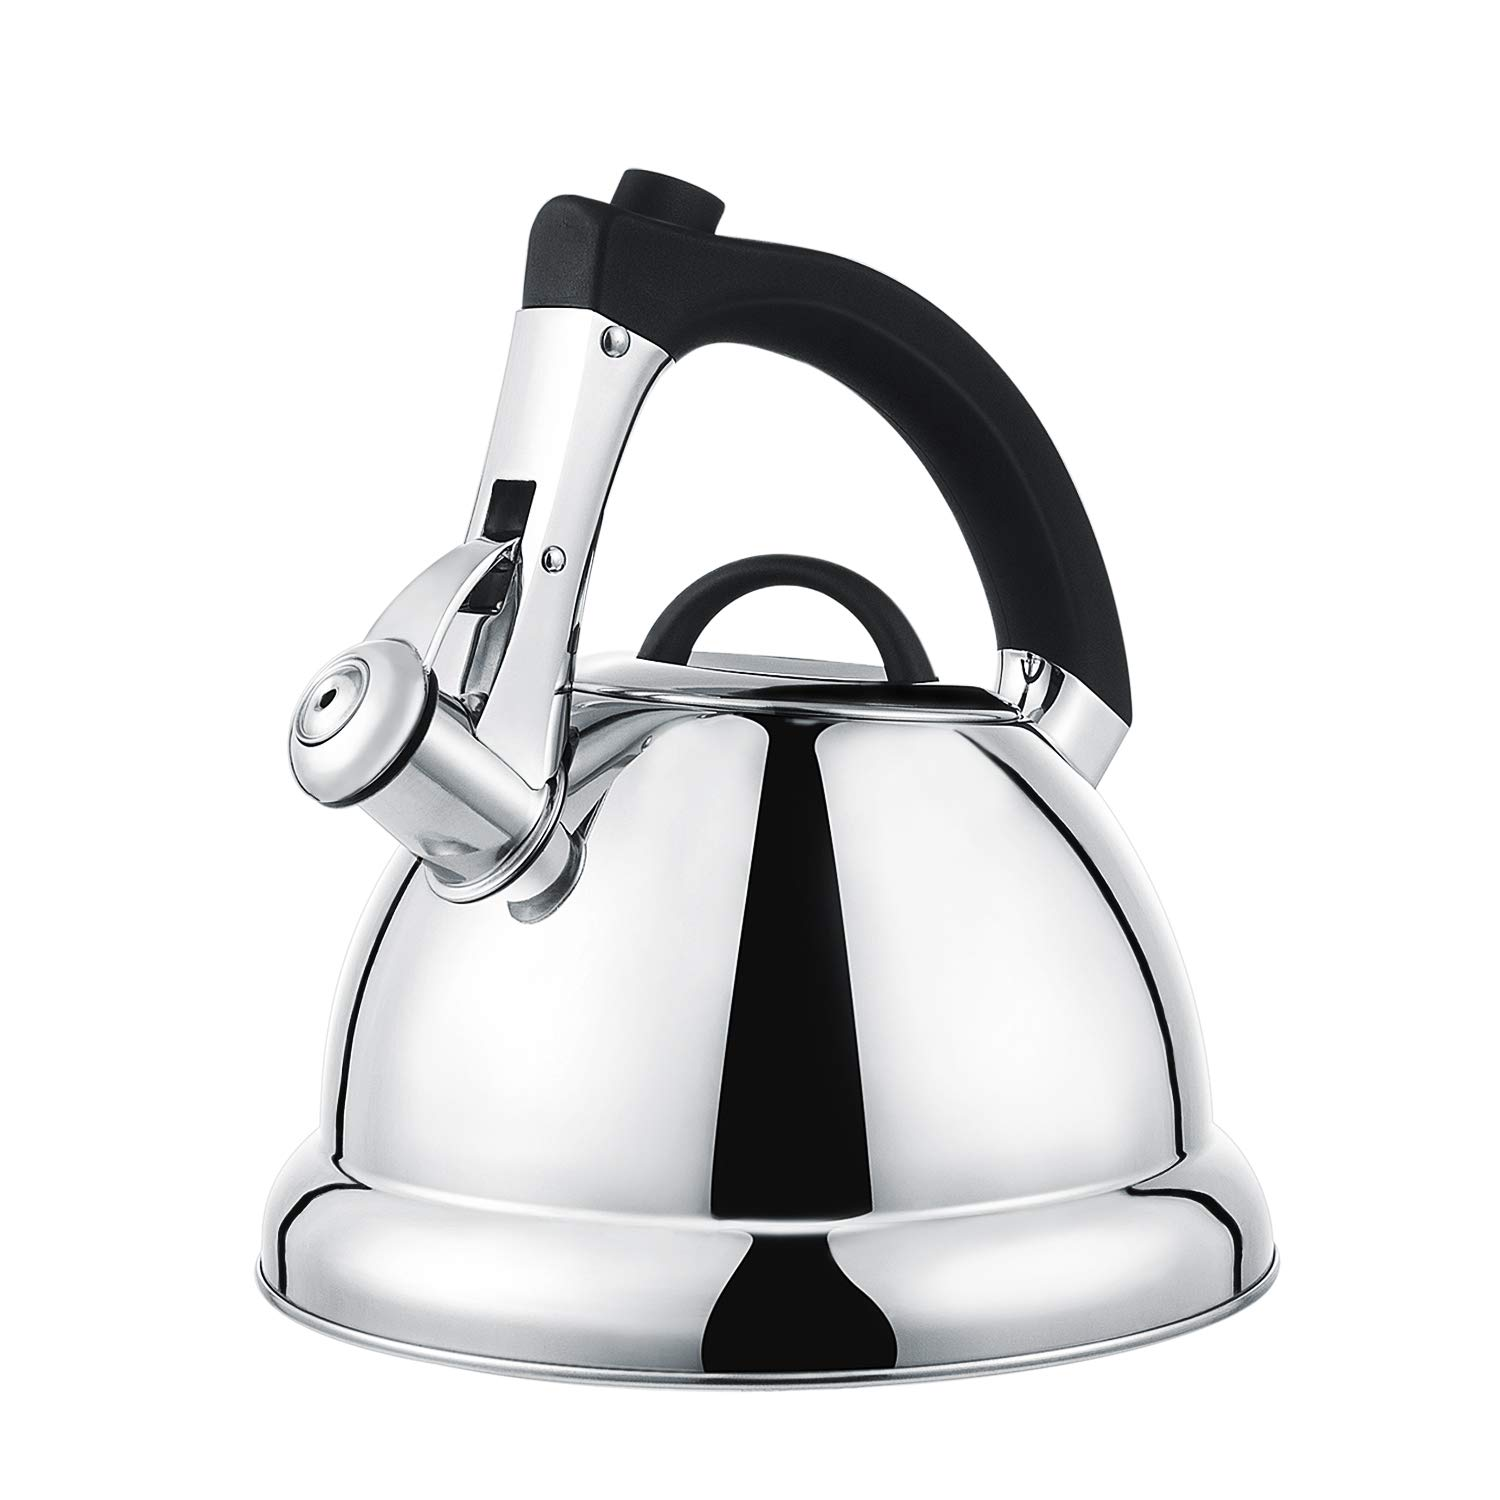 BYSURE Whisting Tea Kettle- Surgical 18/8 Stainless Steel Audible Whistle Teapot for All Stove Top with Heatproof Handle&Quick Heating Base,2.75 Quart/3 Liter